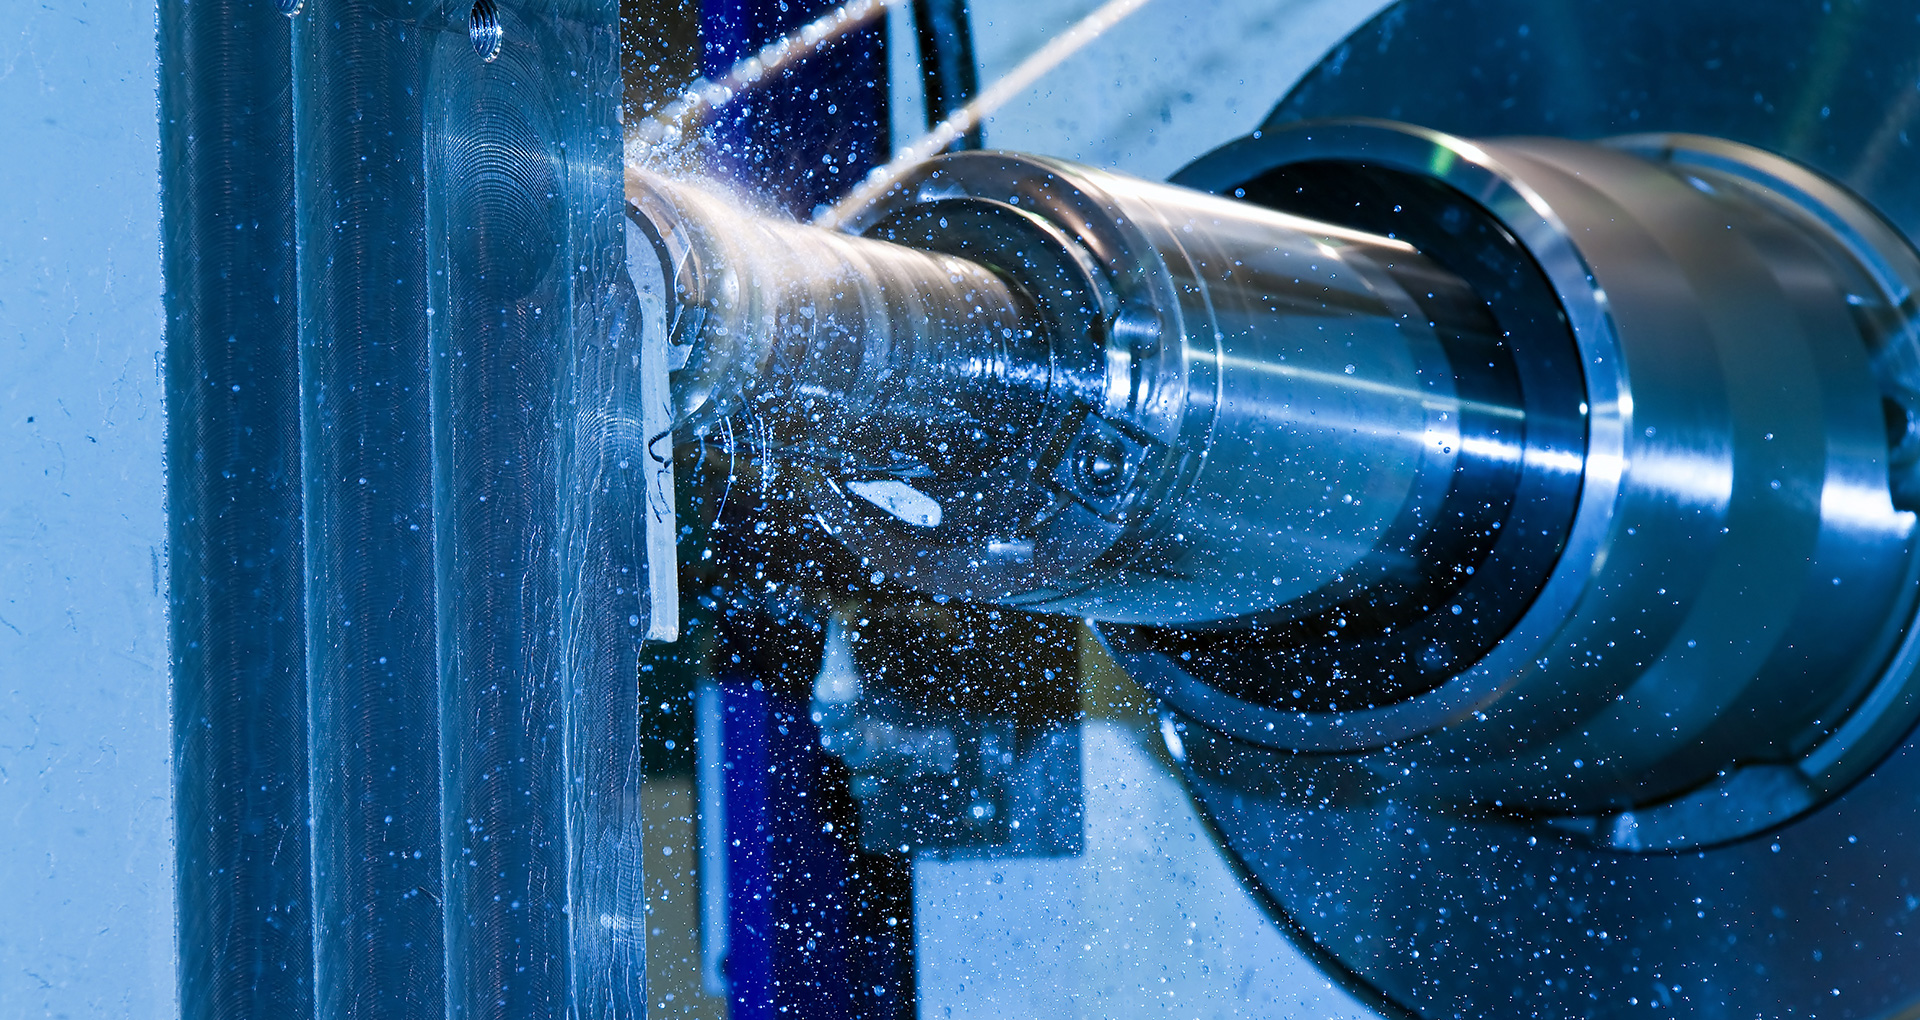 MACHINING TECHNOLOGY - Technological consultancy and assistance